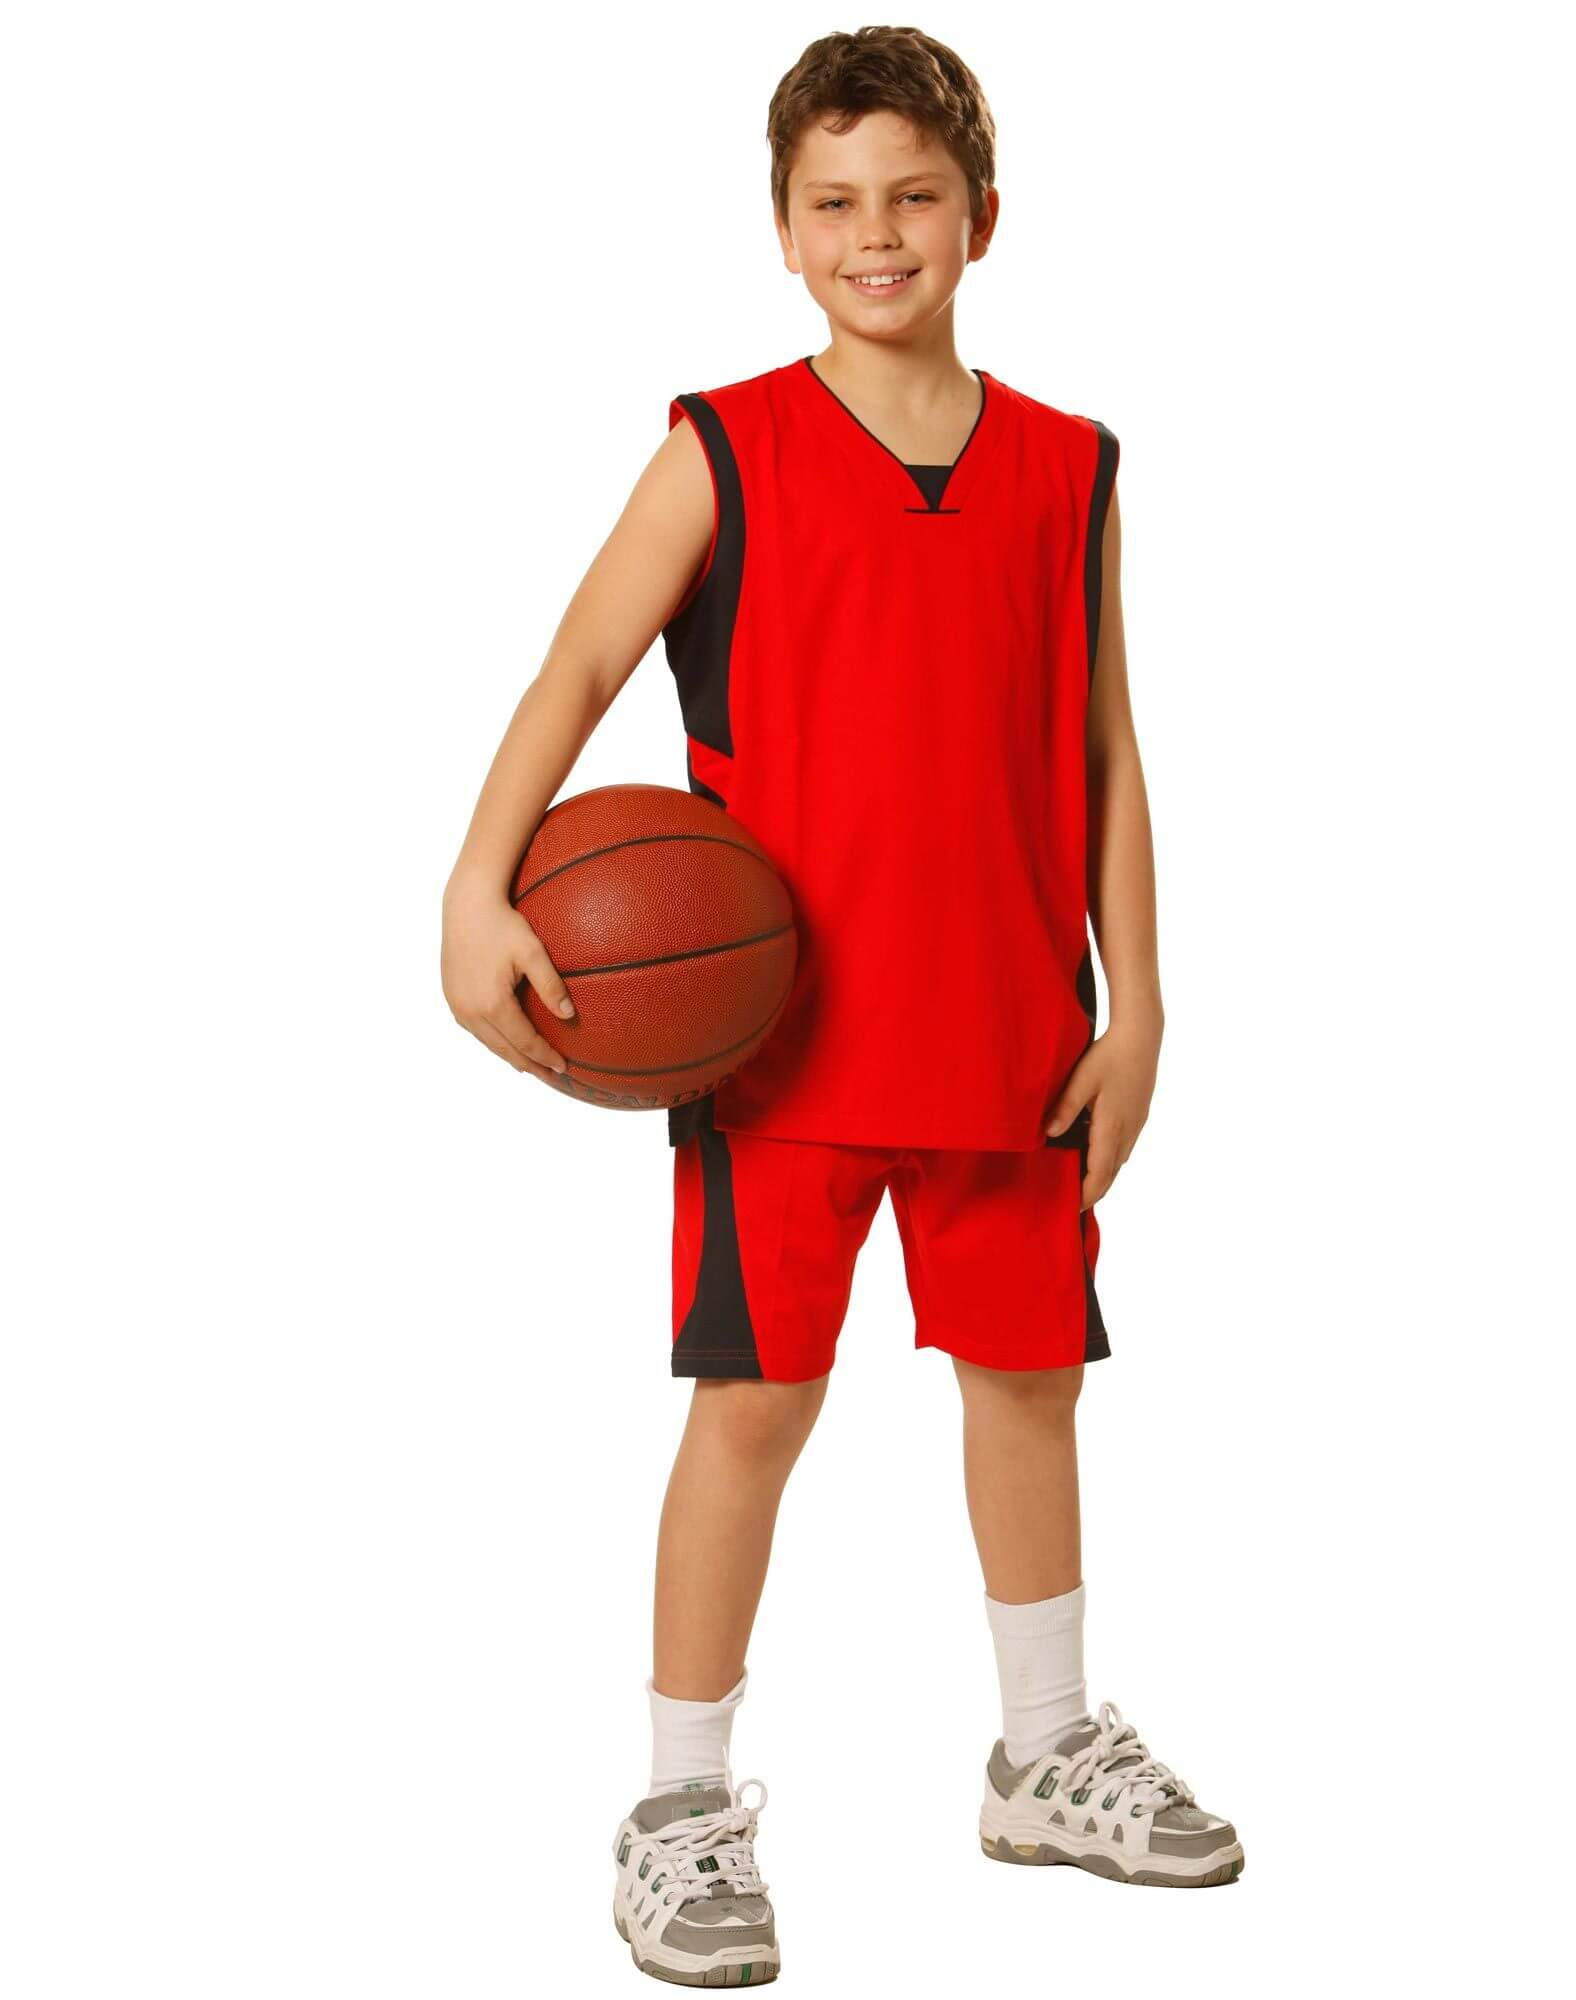 Kids Basketball Jerseys Manufacturers in Spain